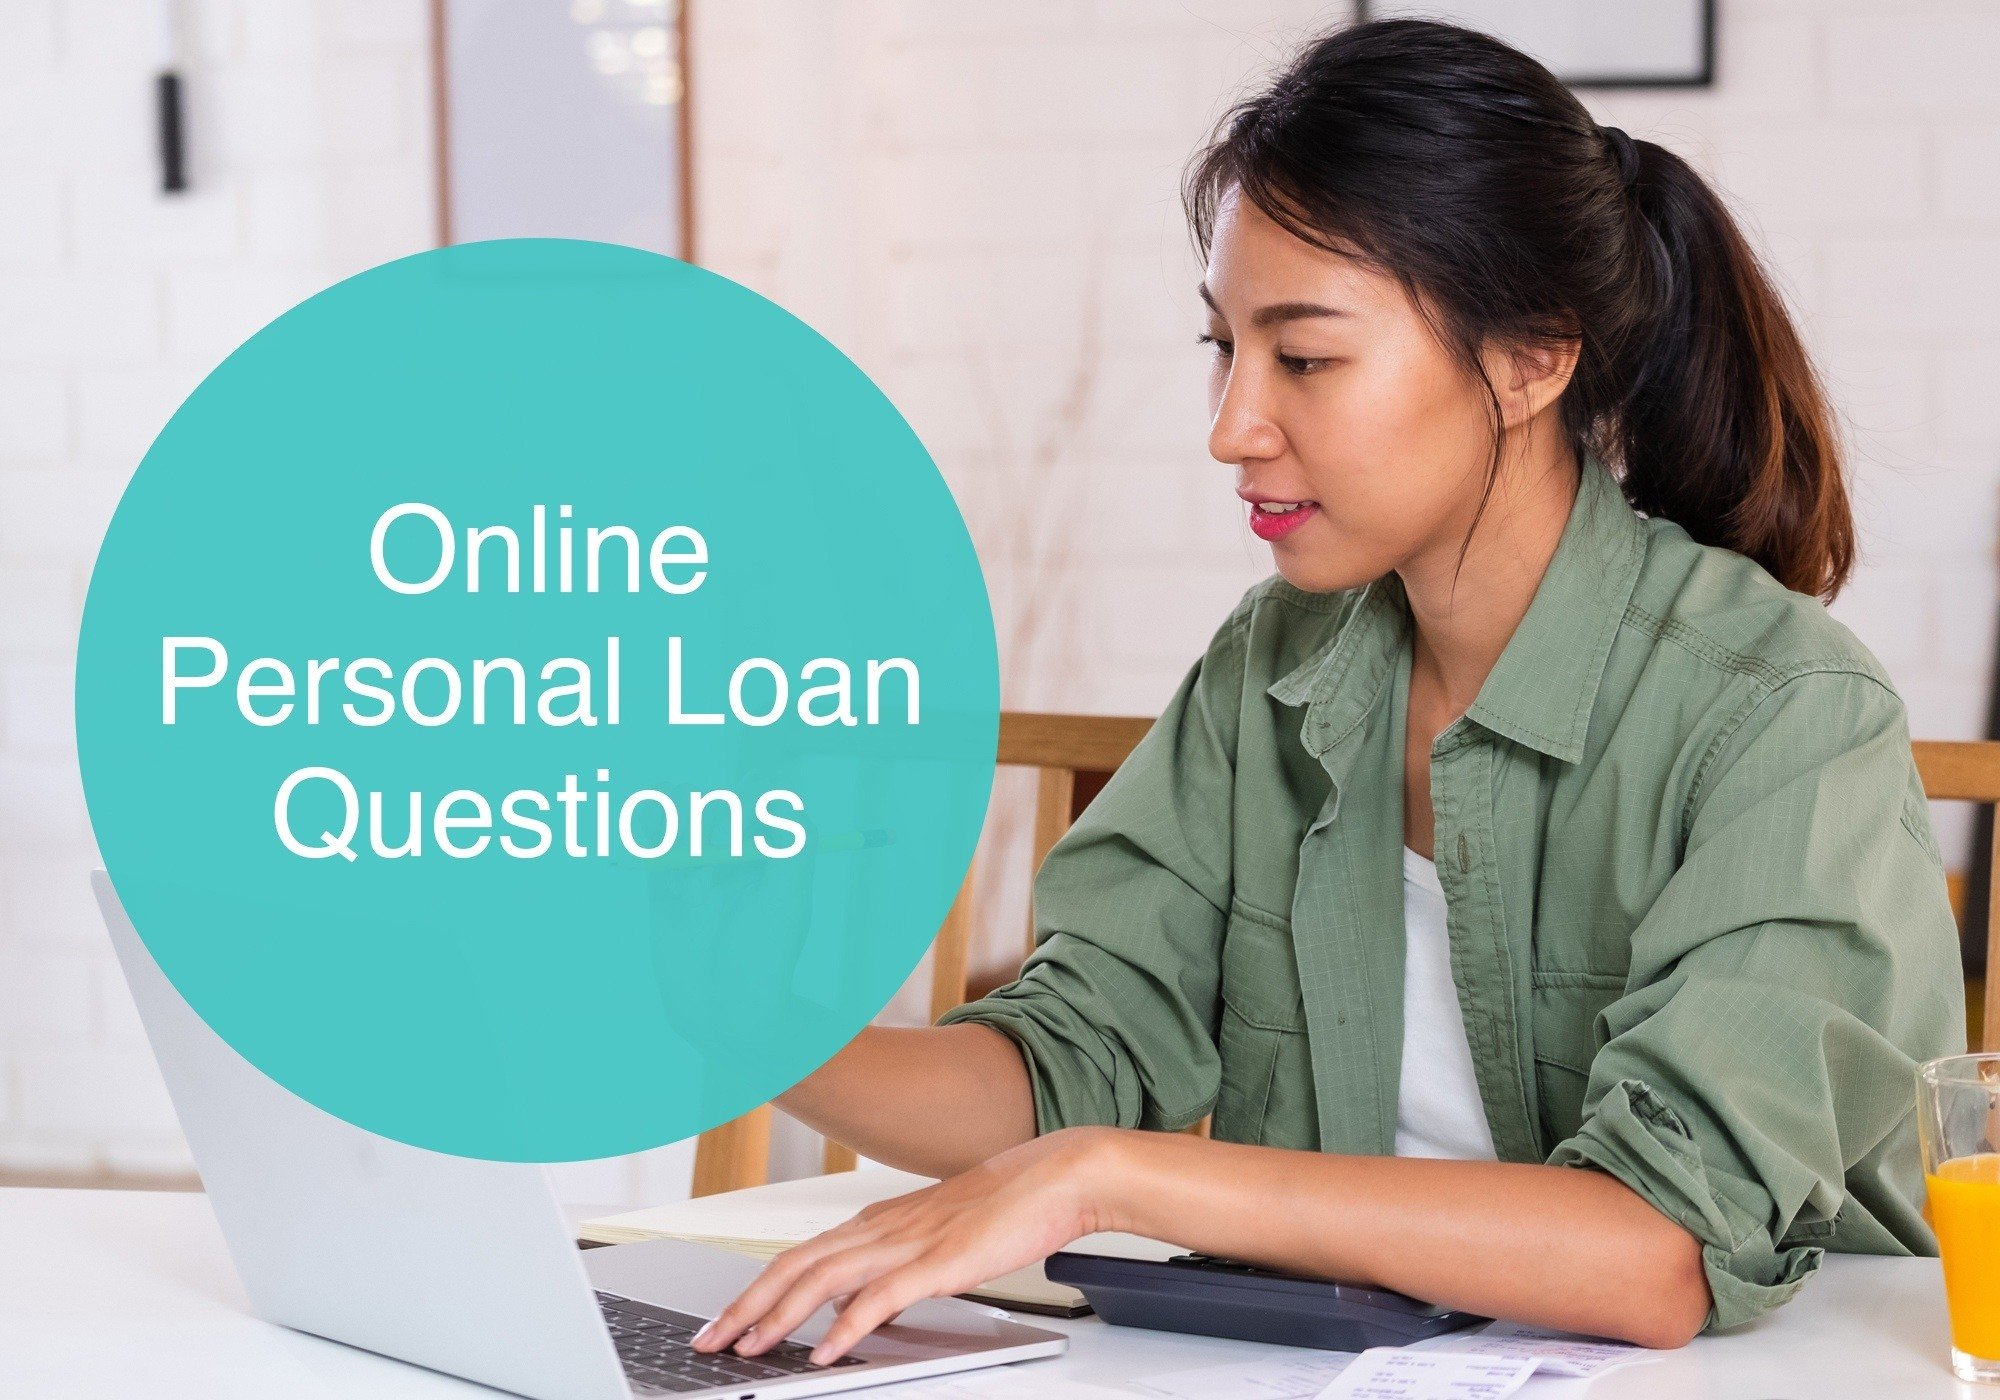 10 Questions to Ask Before Applying for Personal Loans Online